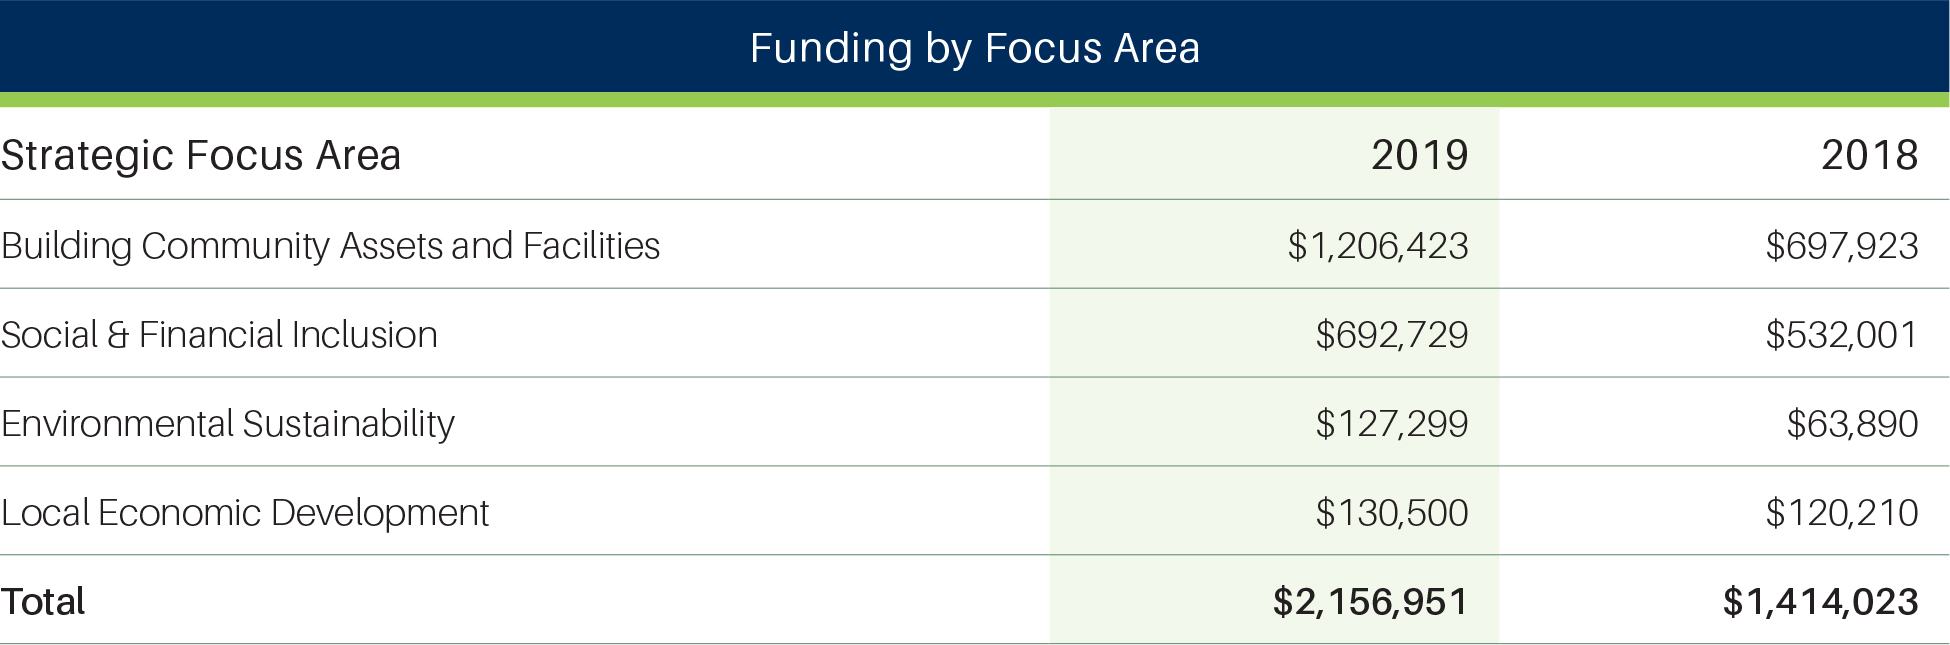 Funding by Focus Area